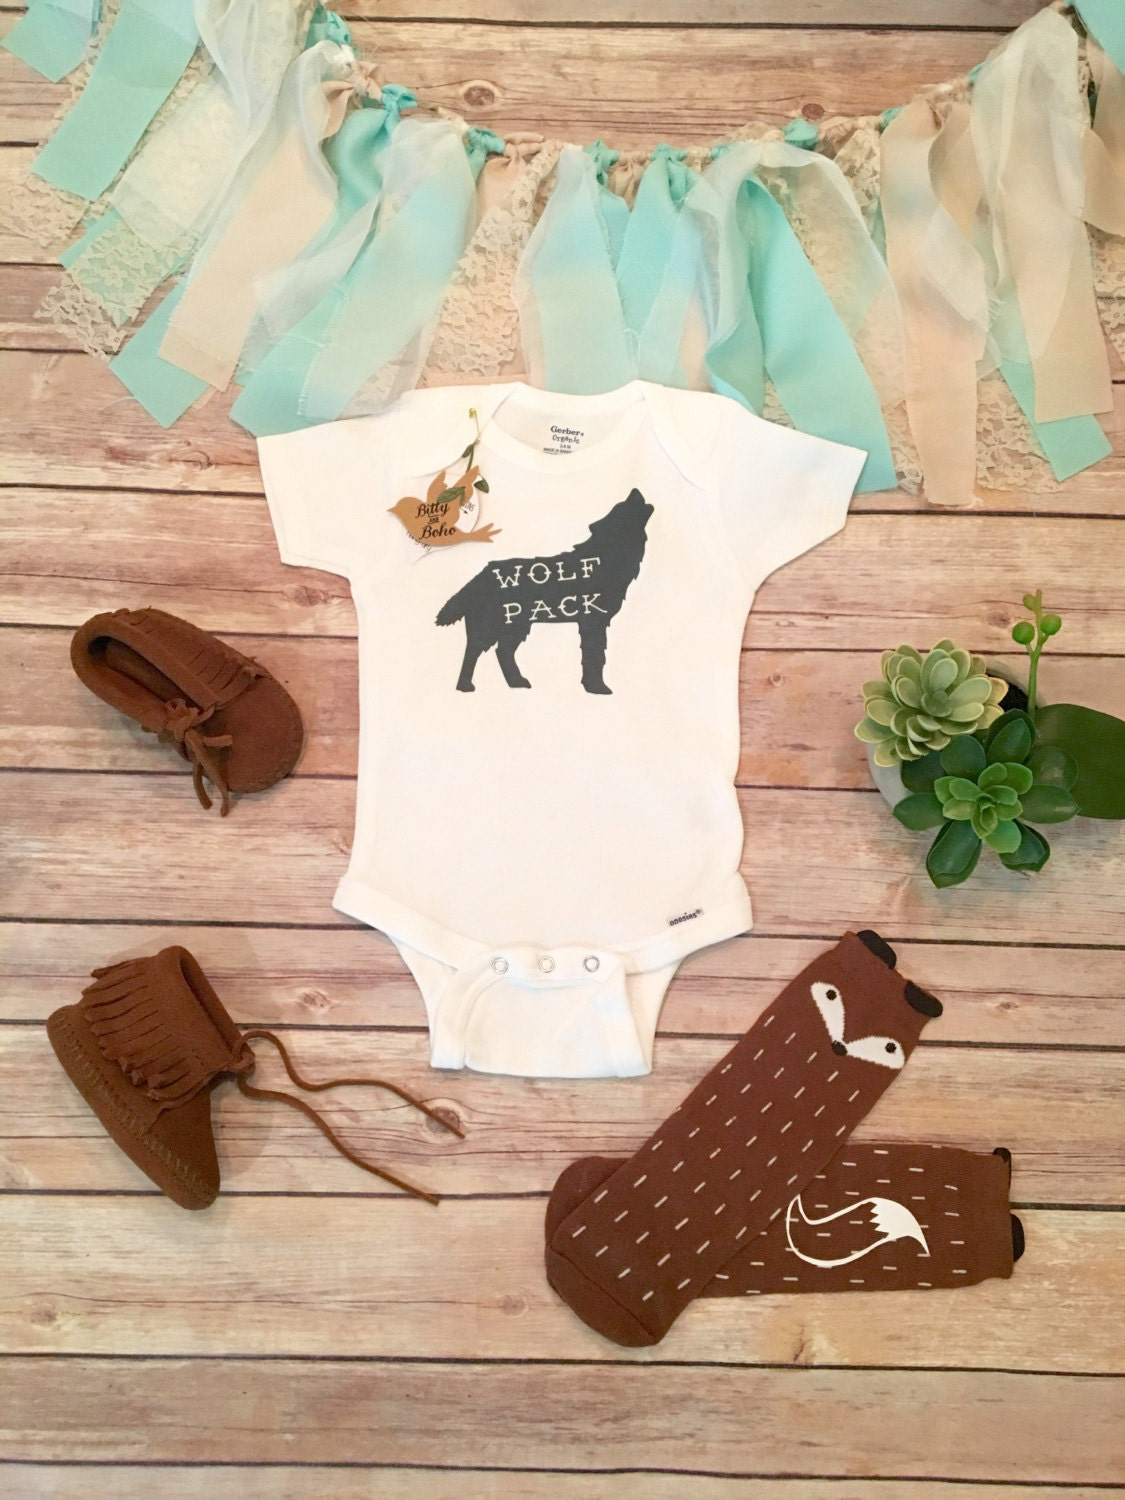 WOLF PACK Animal Baby esie Baby Boy Clothes Baby Clothes